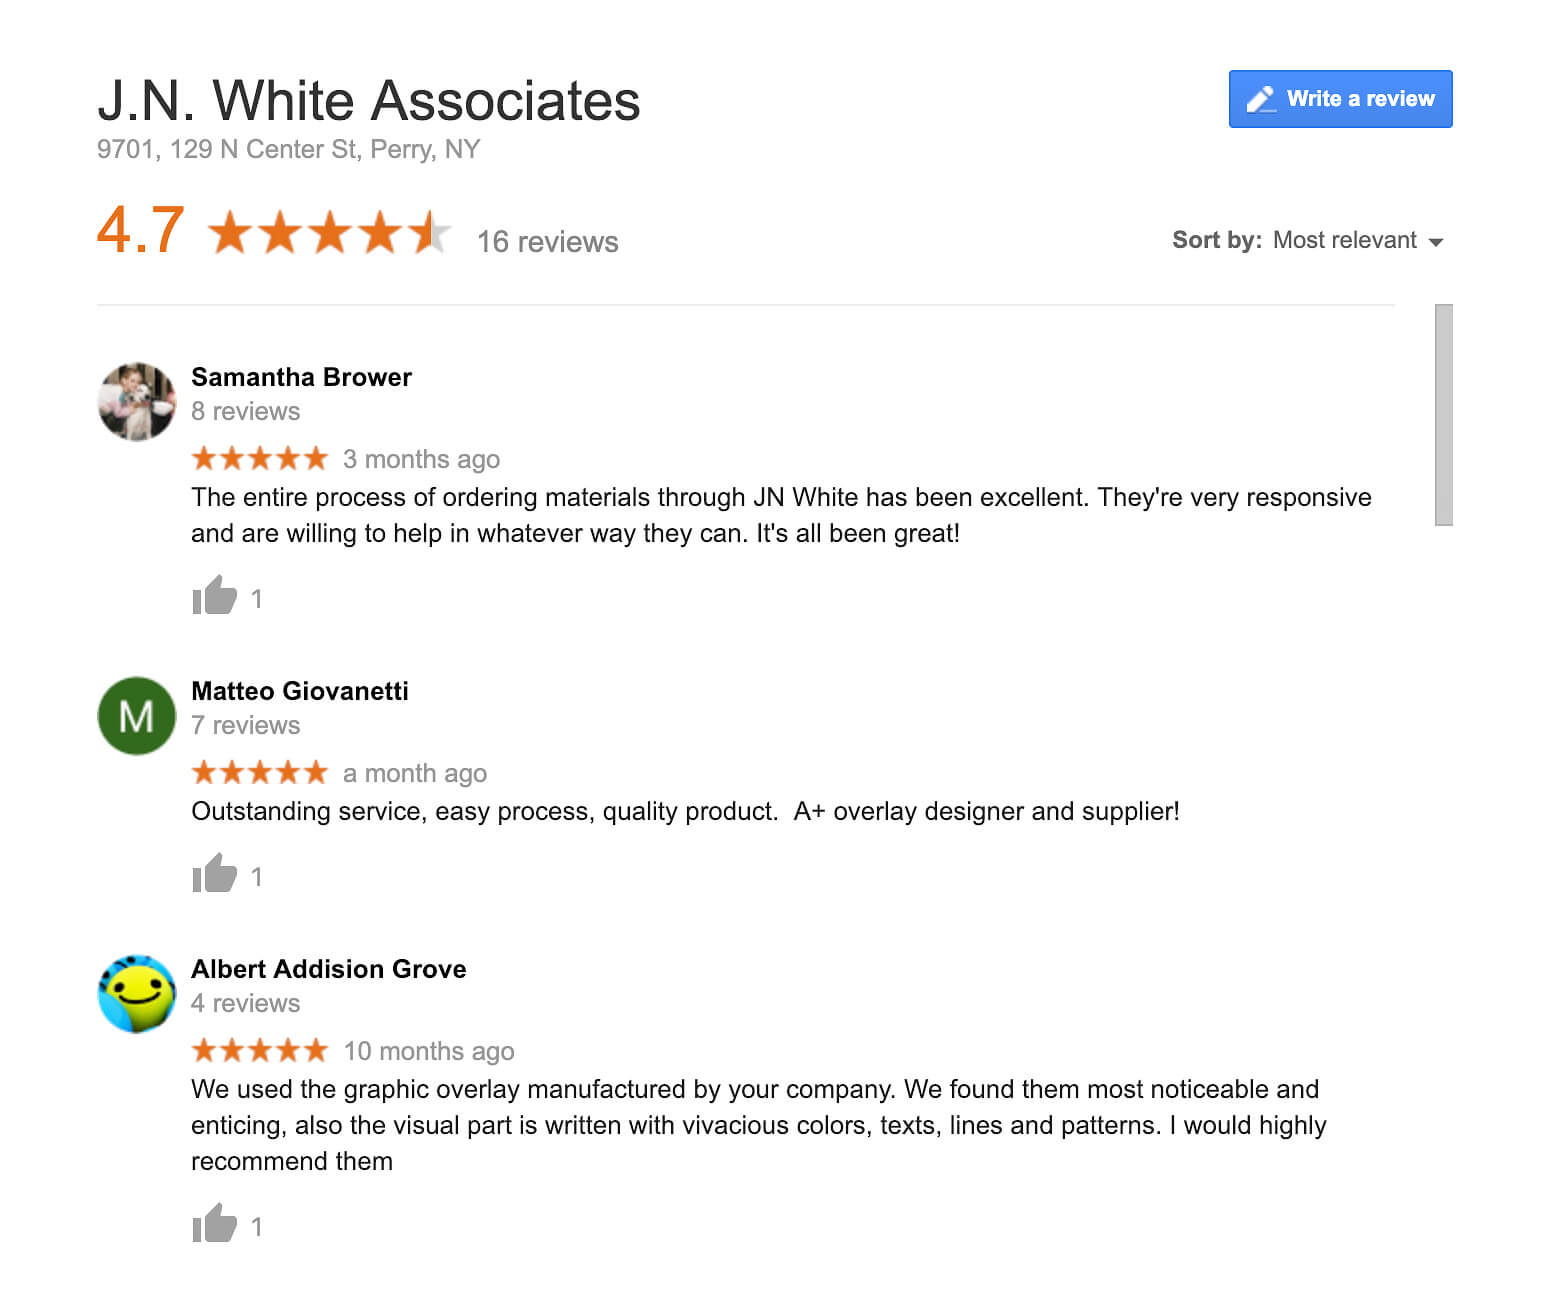 SEO Pyramid User Reviews